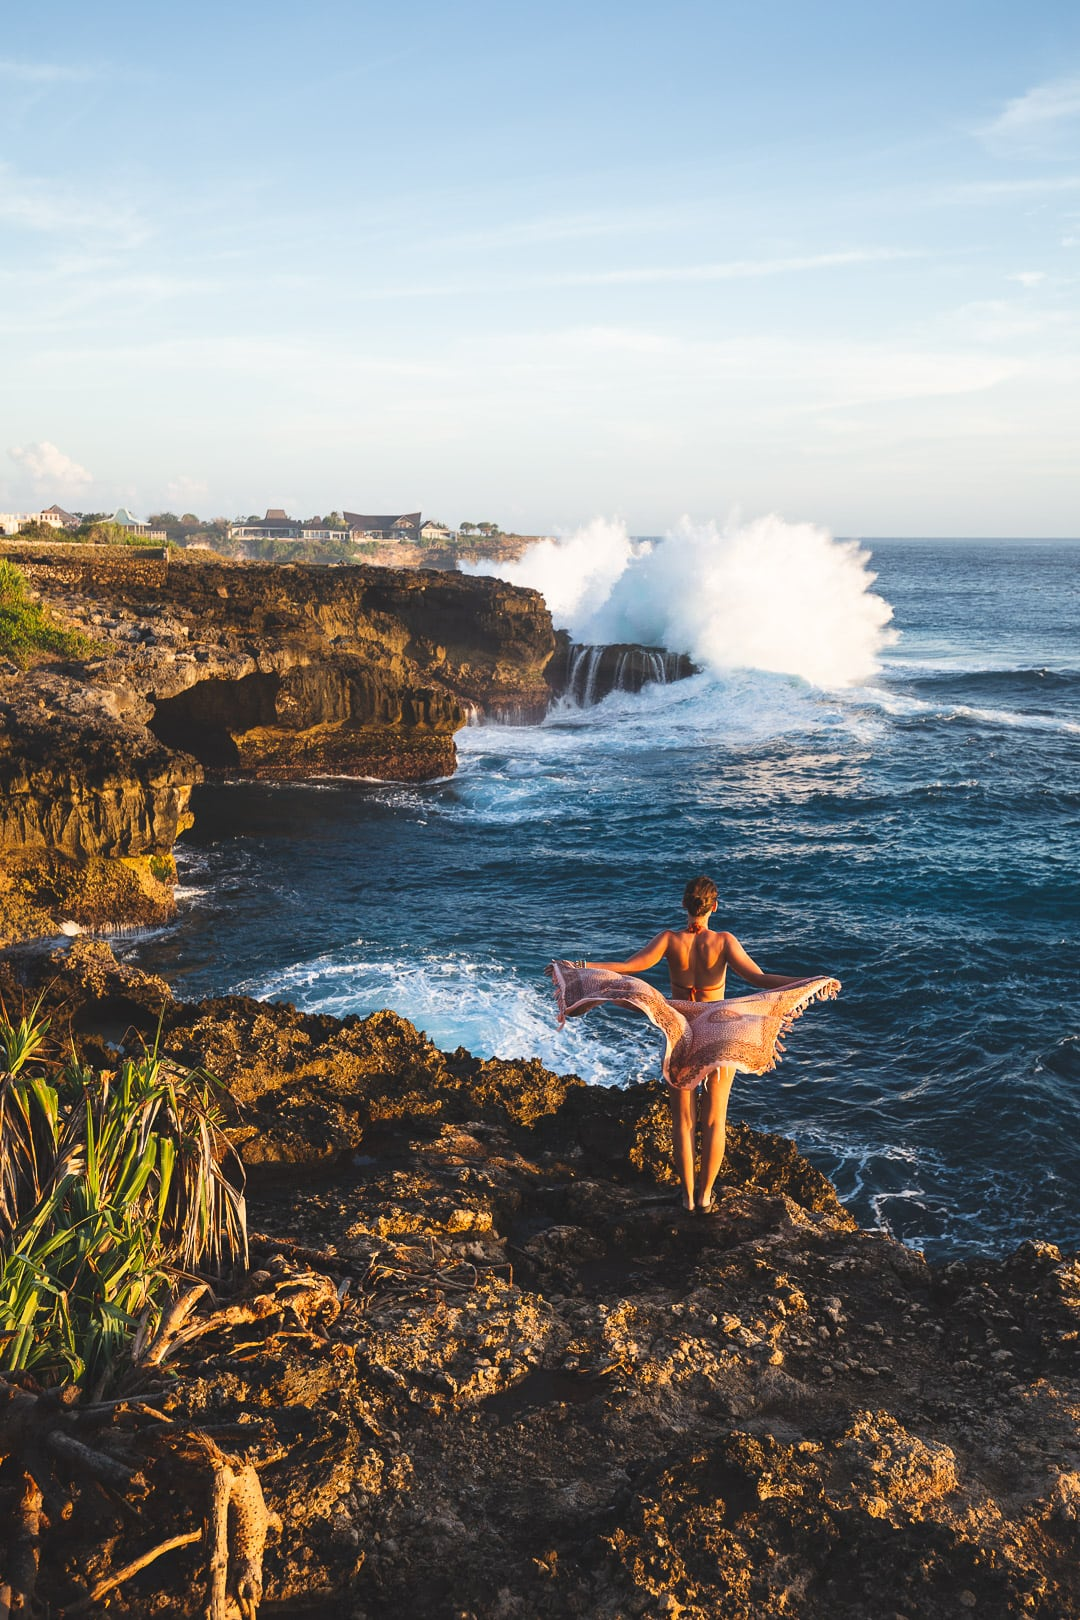 Overlooking the waves at sunset near Dead Pool on Nusa Lembongan